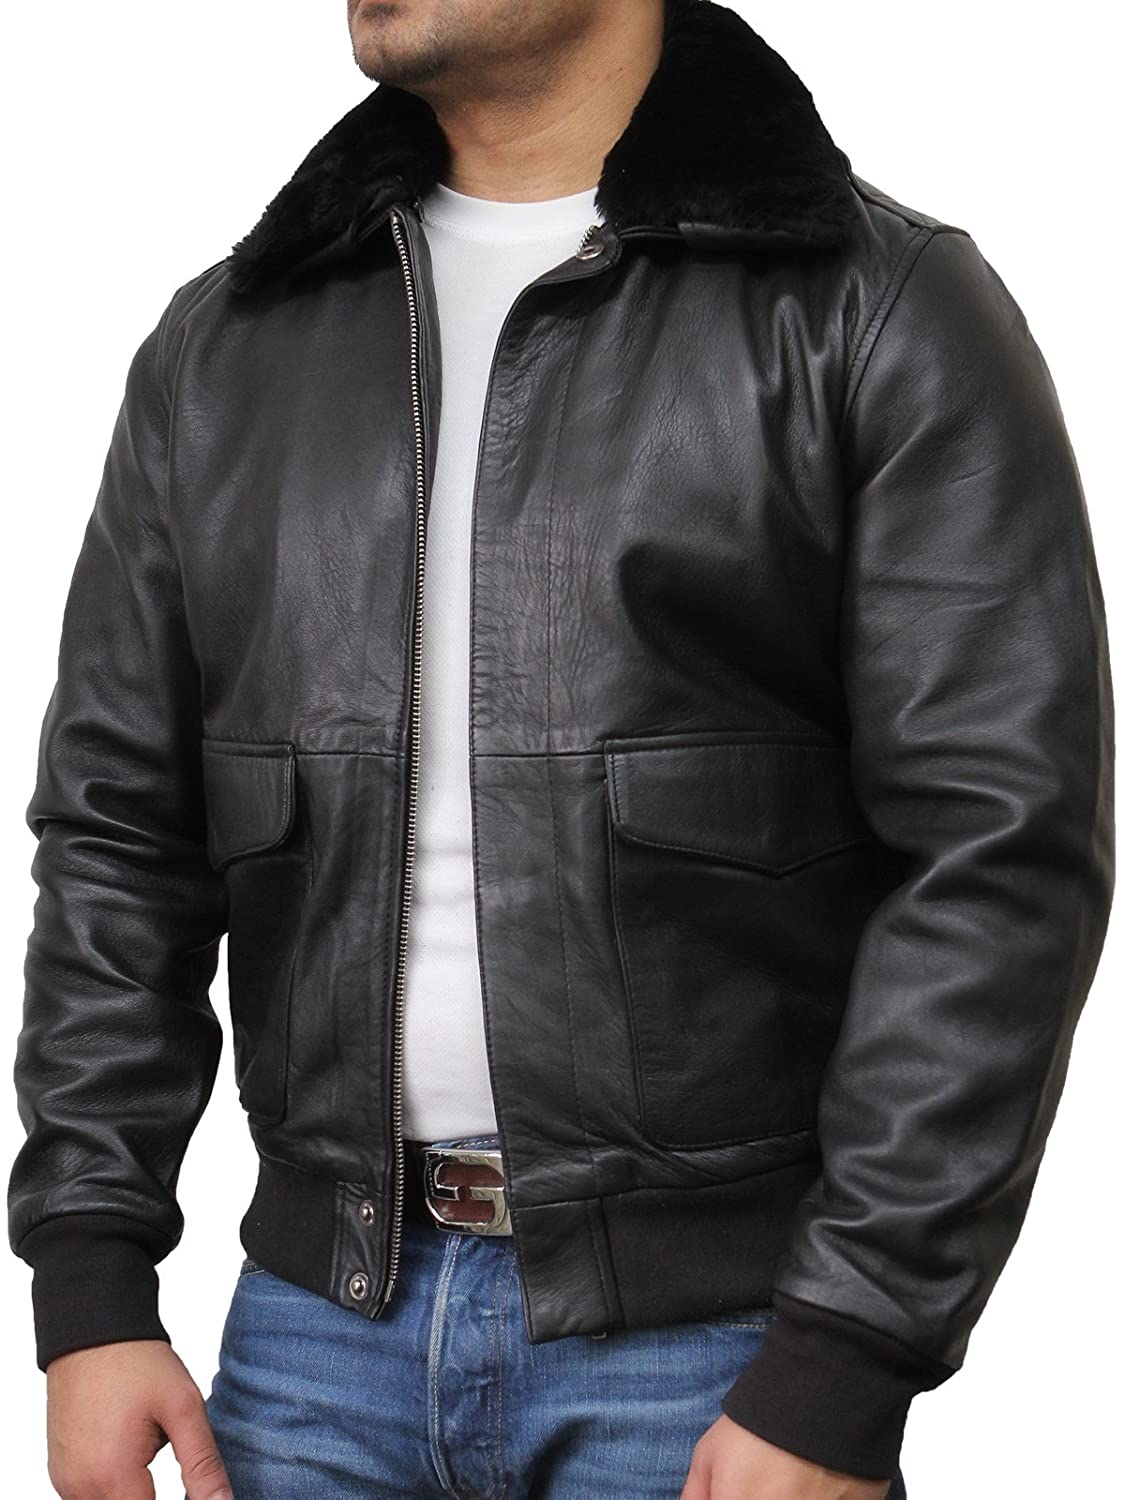 Mens Real Fur Collar Leather Bomber Pilot Flying Jacket Black A2 With Removable Sheepskin Fur Collar